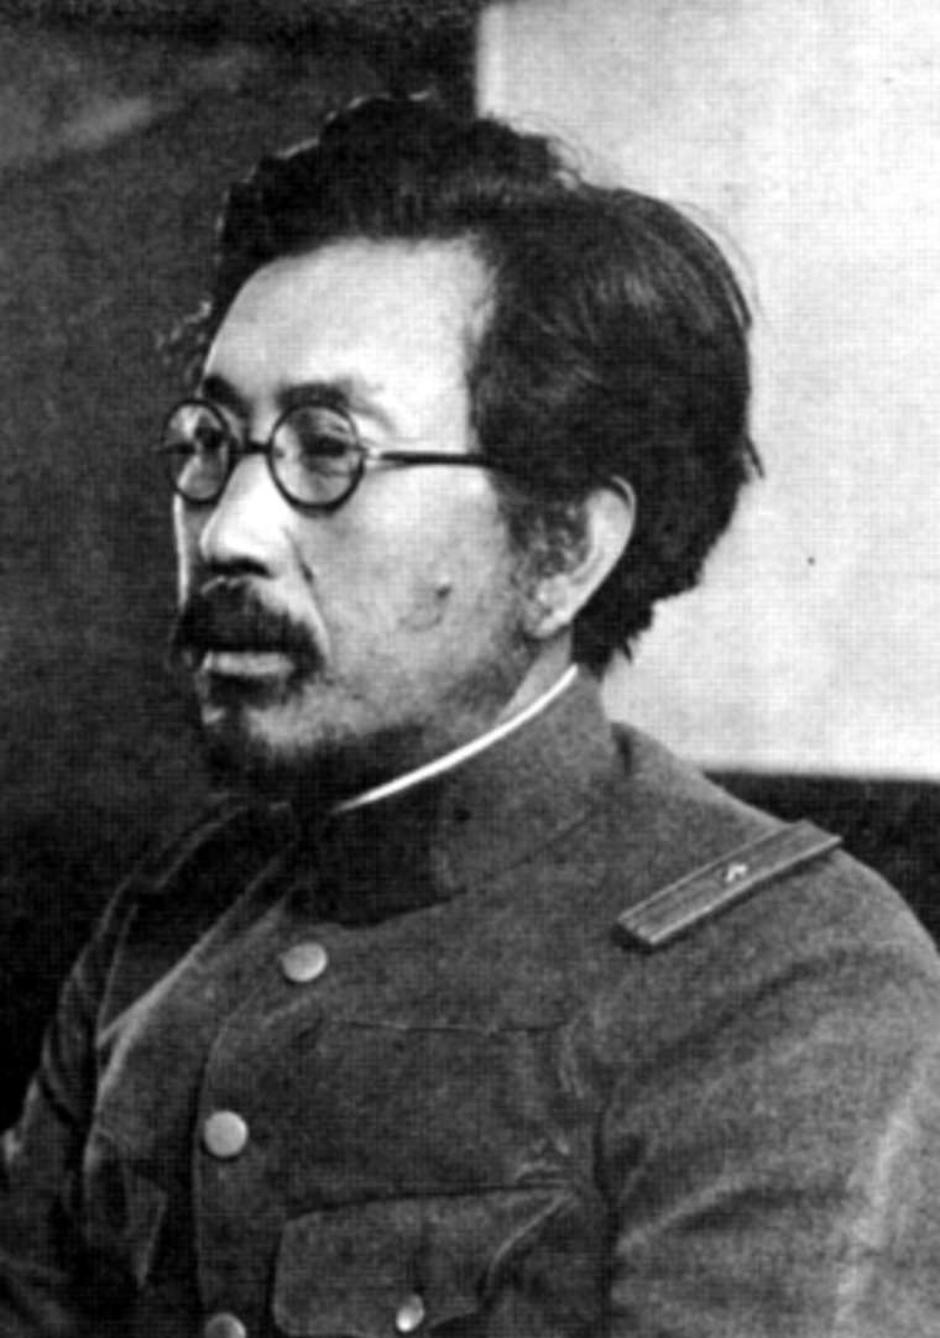 Shiro Ishii | Author: Wikipedia